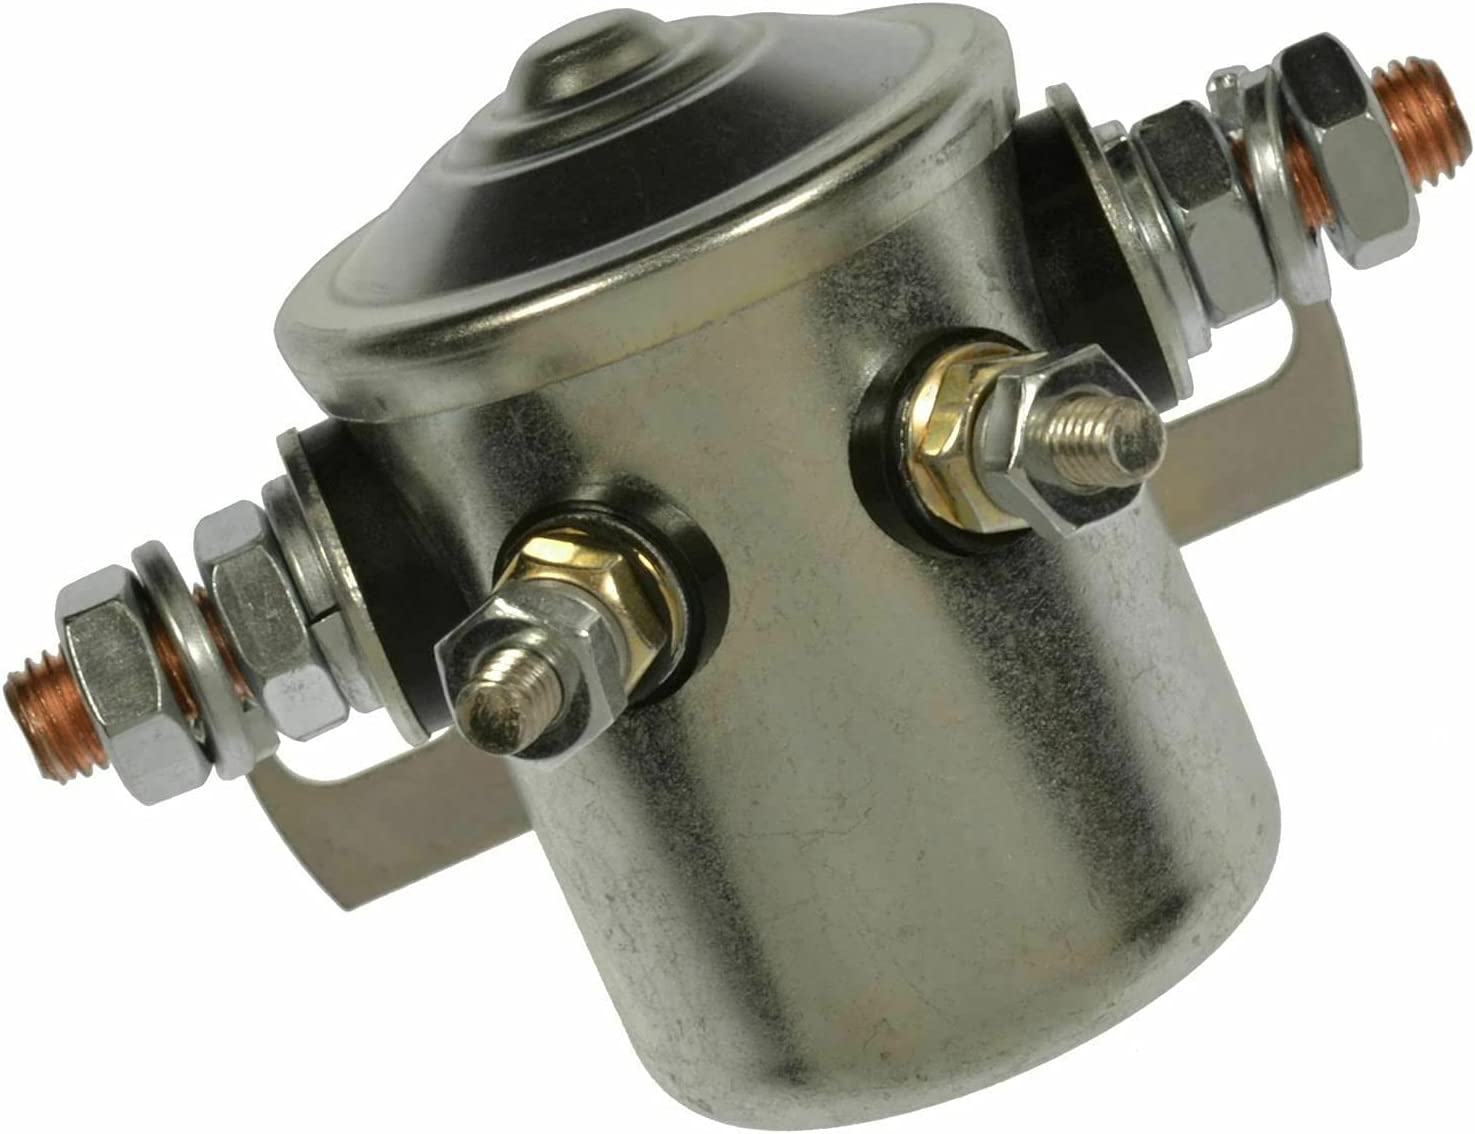 Replacement Albuquerque Mall Value SS-608 Solenoid Starter Over item handling